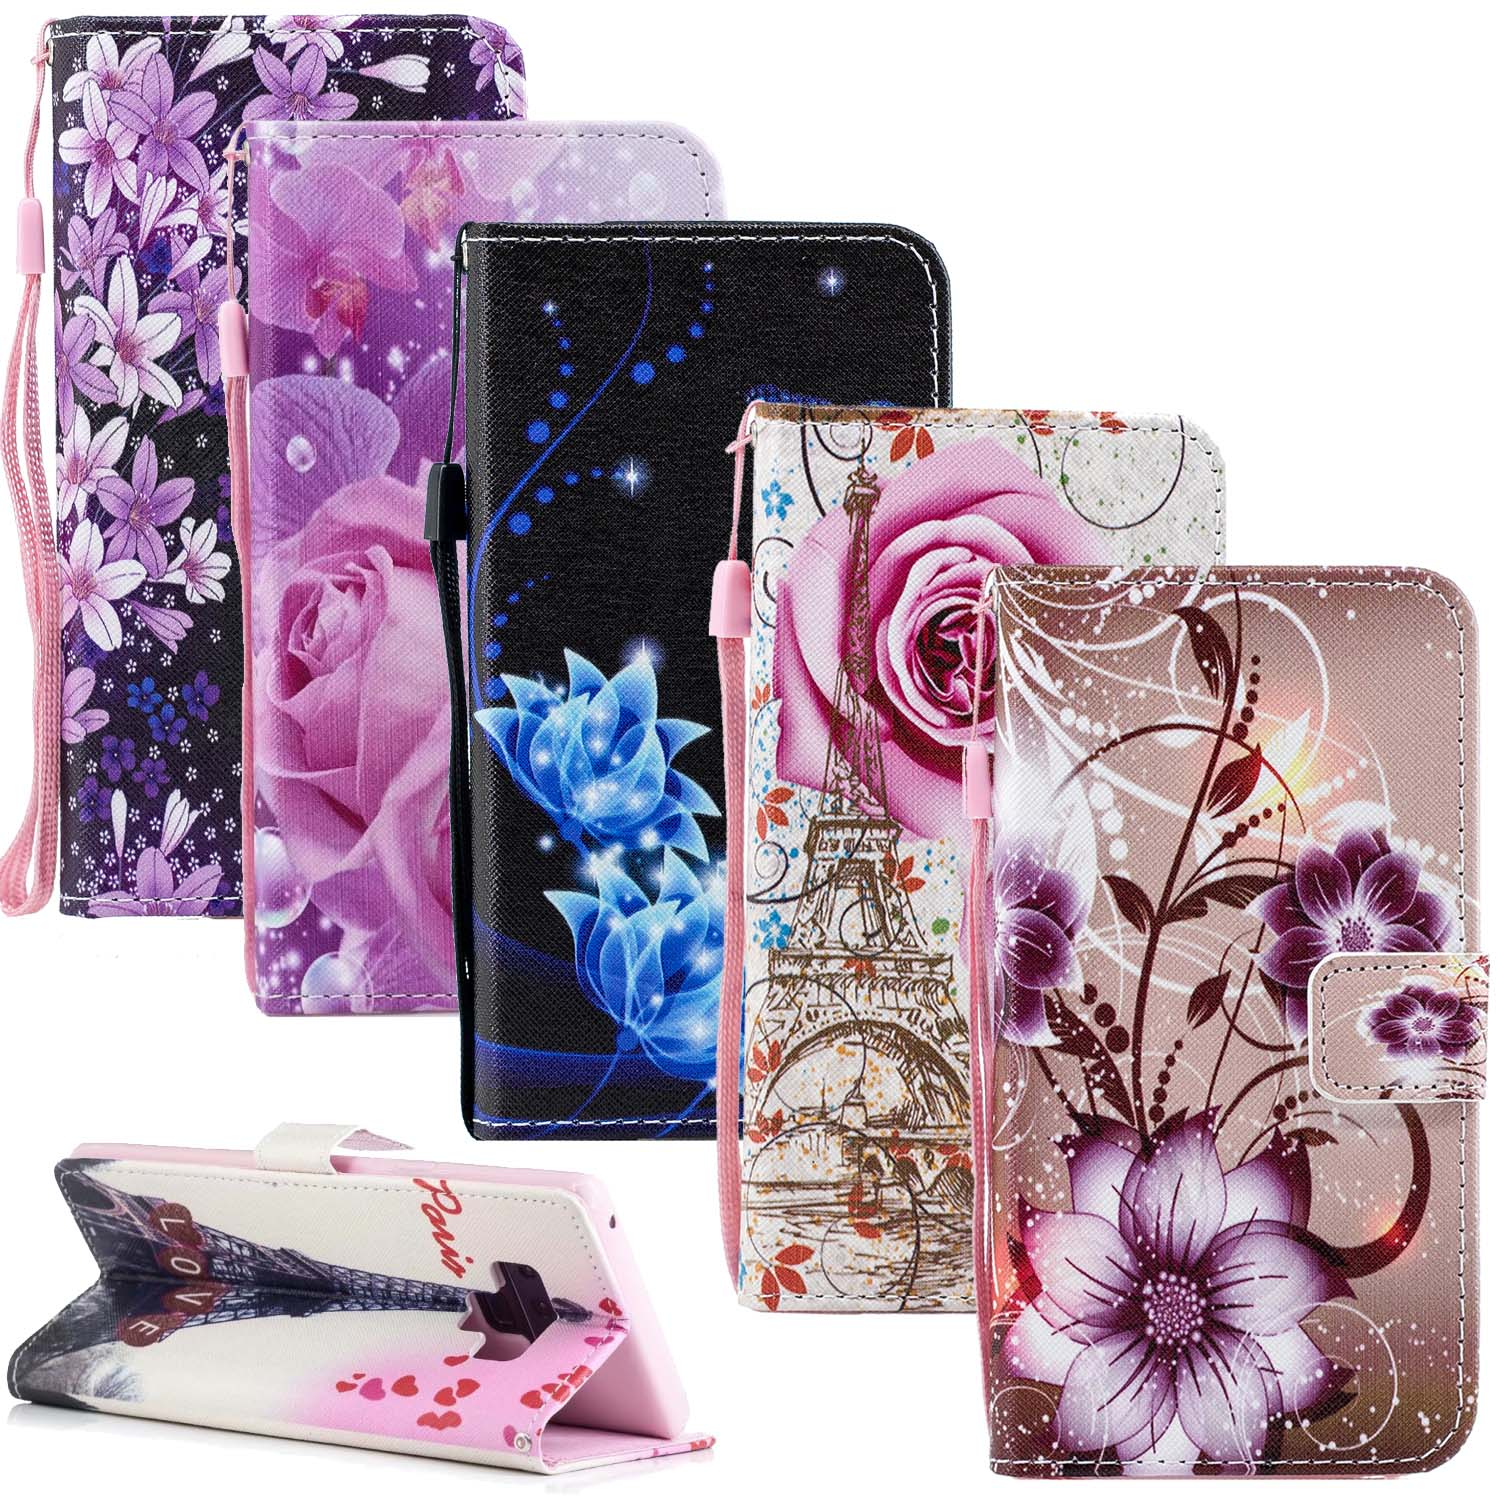 <font><b>M10</b></font> M20 M30 Flower <font><b>Leather</b></font> <font><b>Cases</b></font> For <font><b>Samsung</b></font> Galaxy S10 Plus S10e S9 S8 A7 A9 2018 A10 A30 A50 <font><b>Case</b></font> J4 J6 Plus Cover <font><b>Wallet</b></font> Bag image